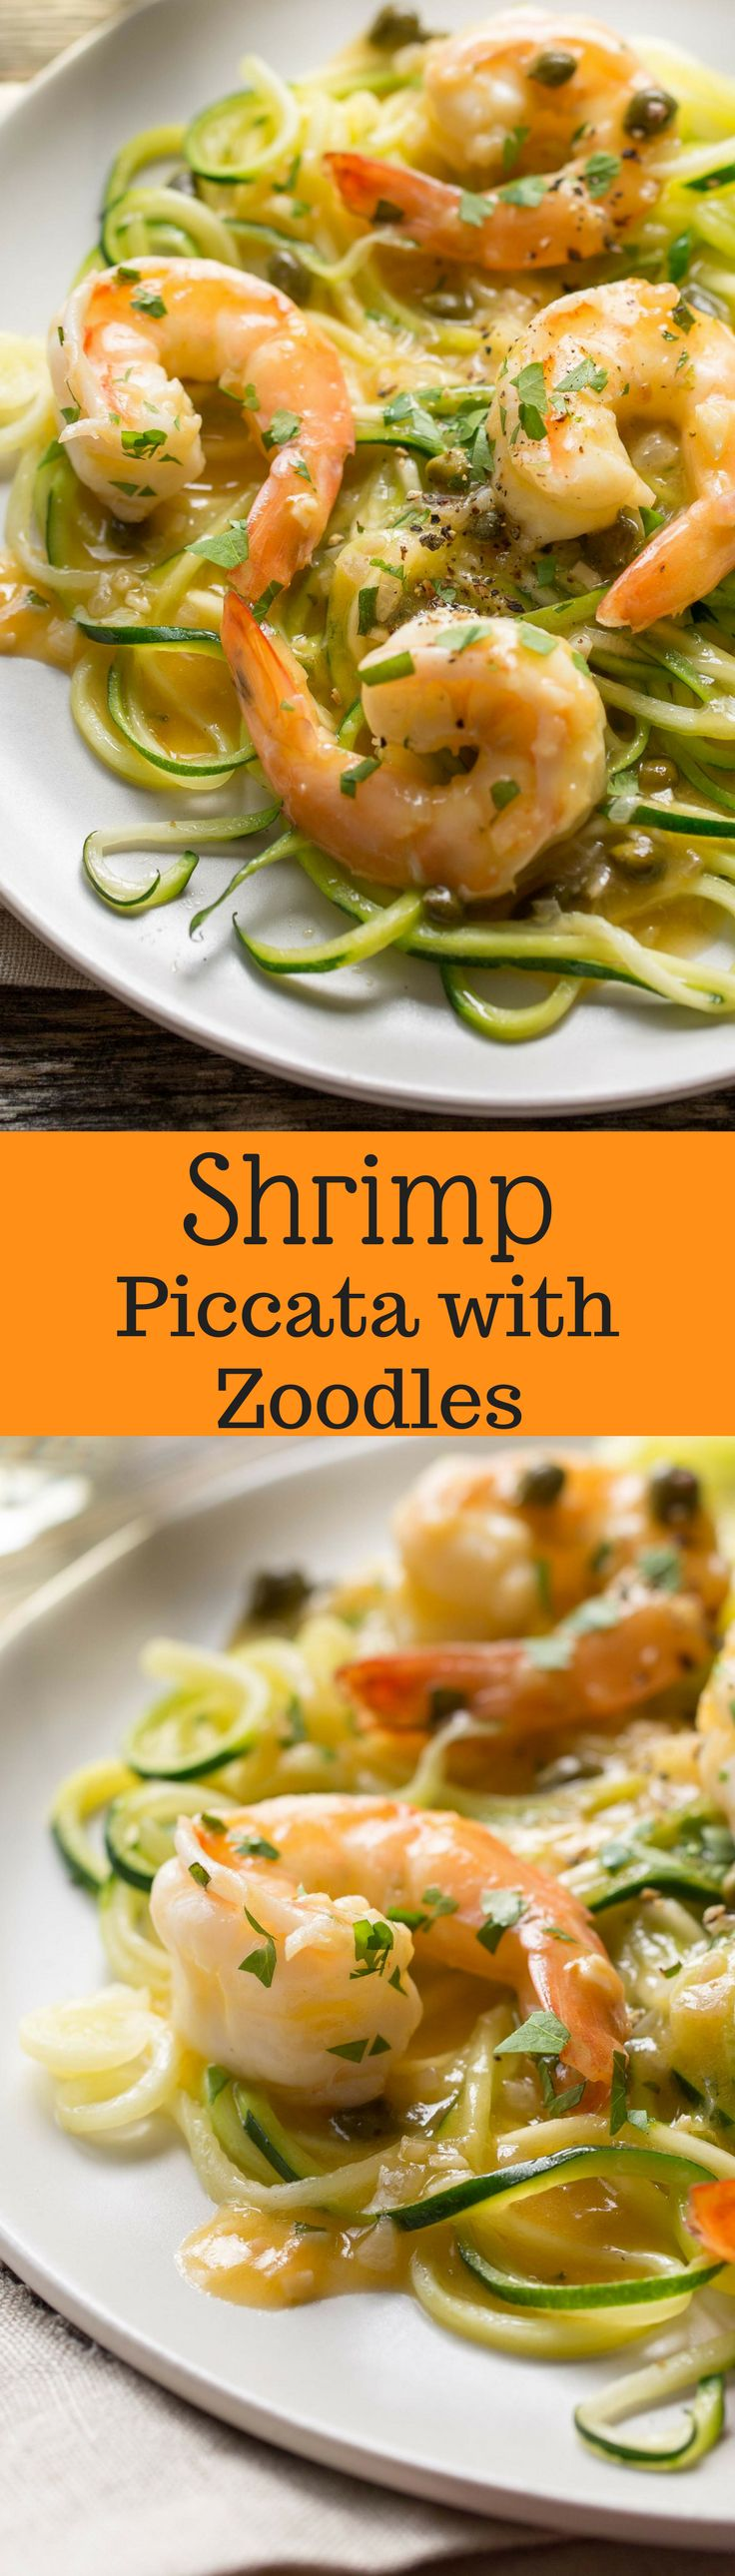 Shrimp Piccata with Zoodles - Zucchini noodles tossed with shrimp sautéed in garlic and topped with a white wine sauce. Served with capers and a squeeze of lemon ... dinner is on the table in less than 45 minutes!   www.savingdessert.com